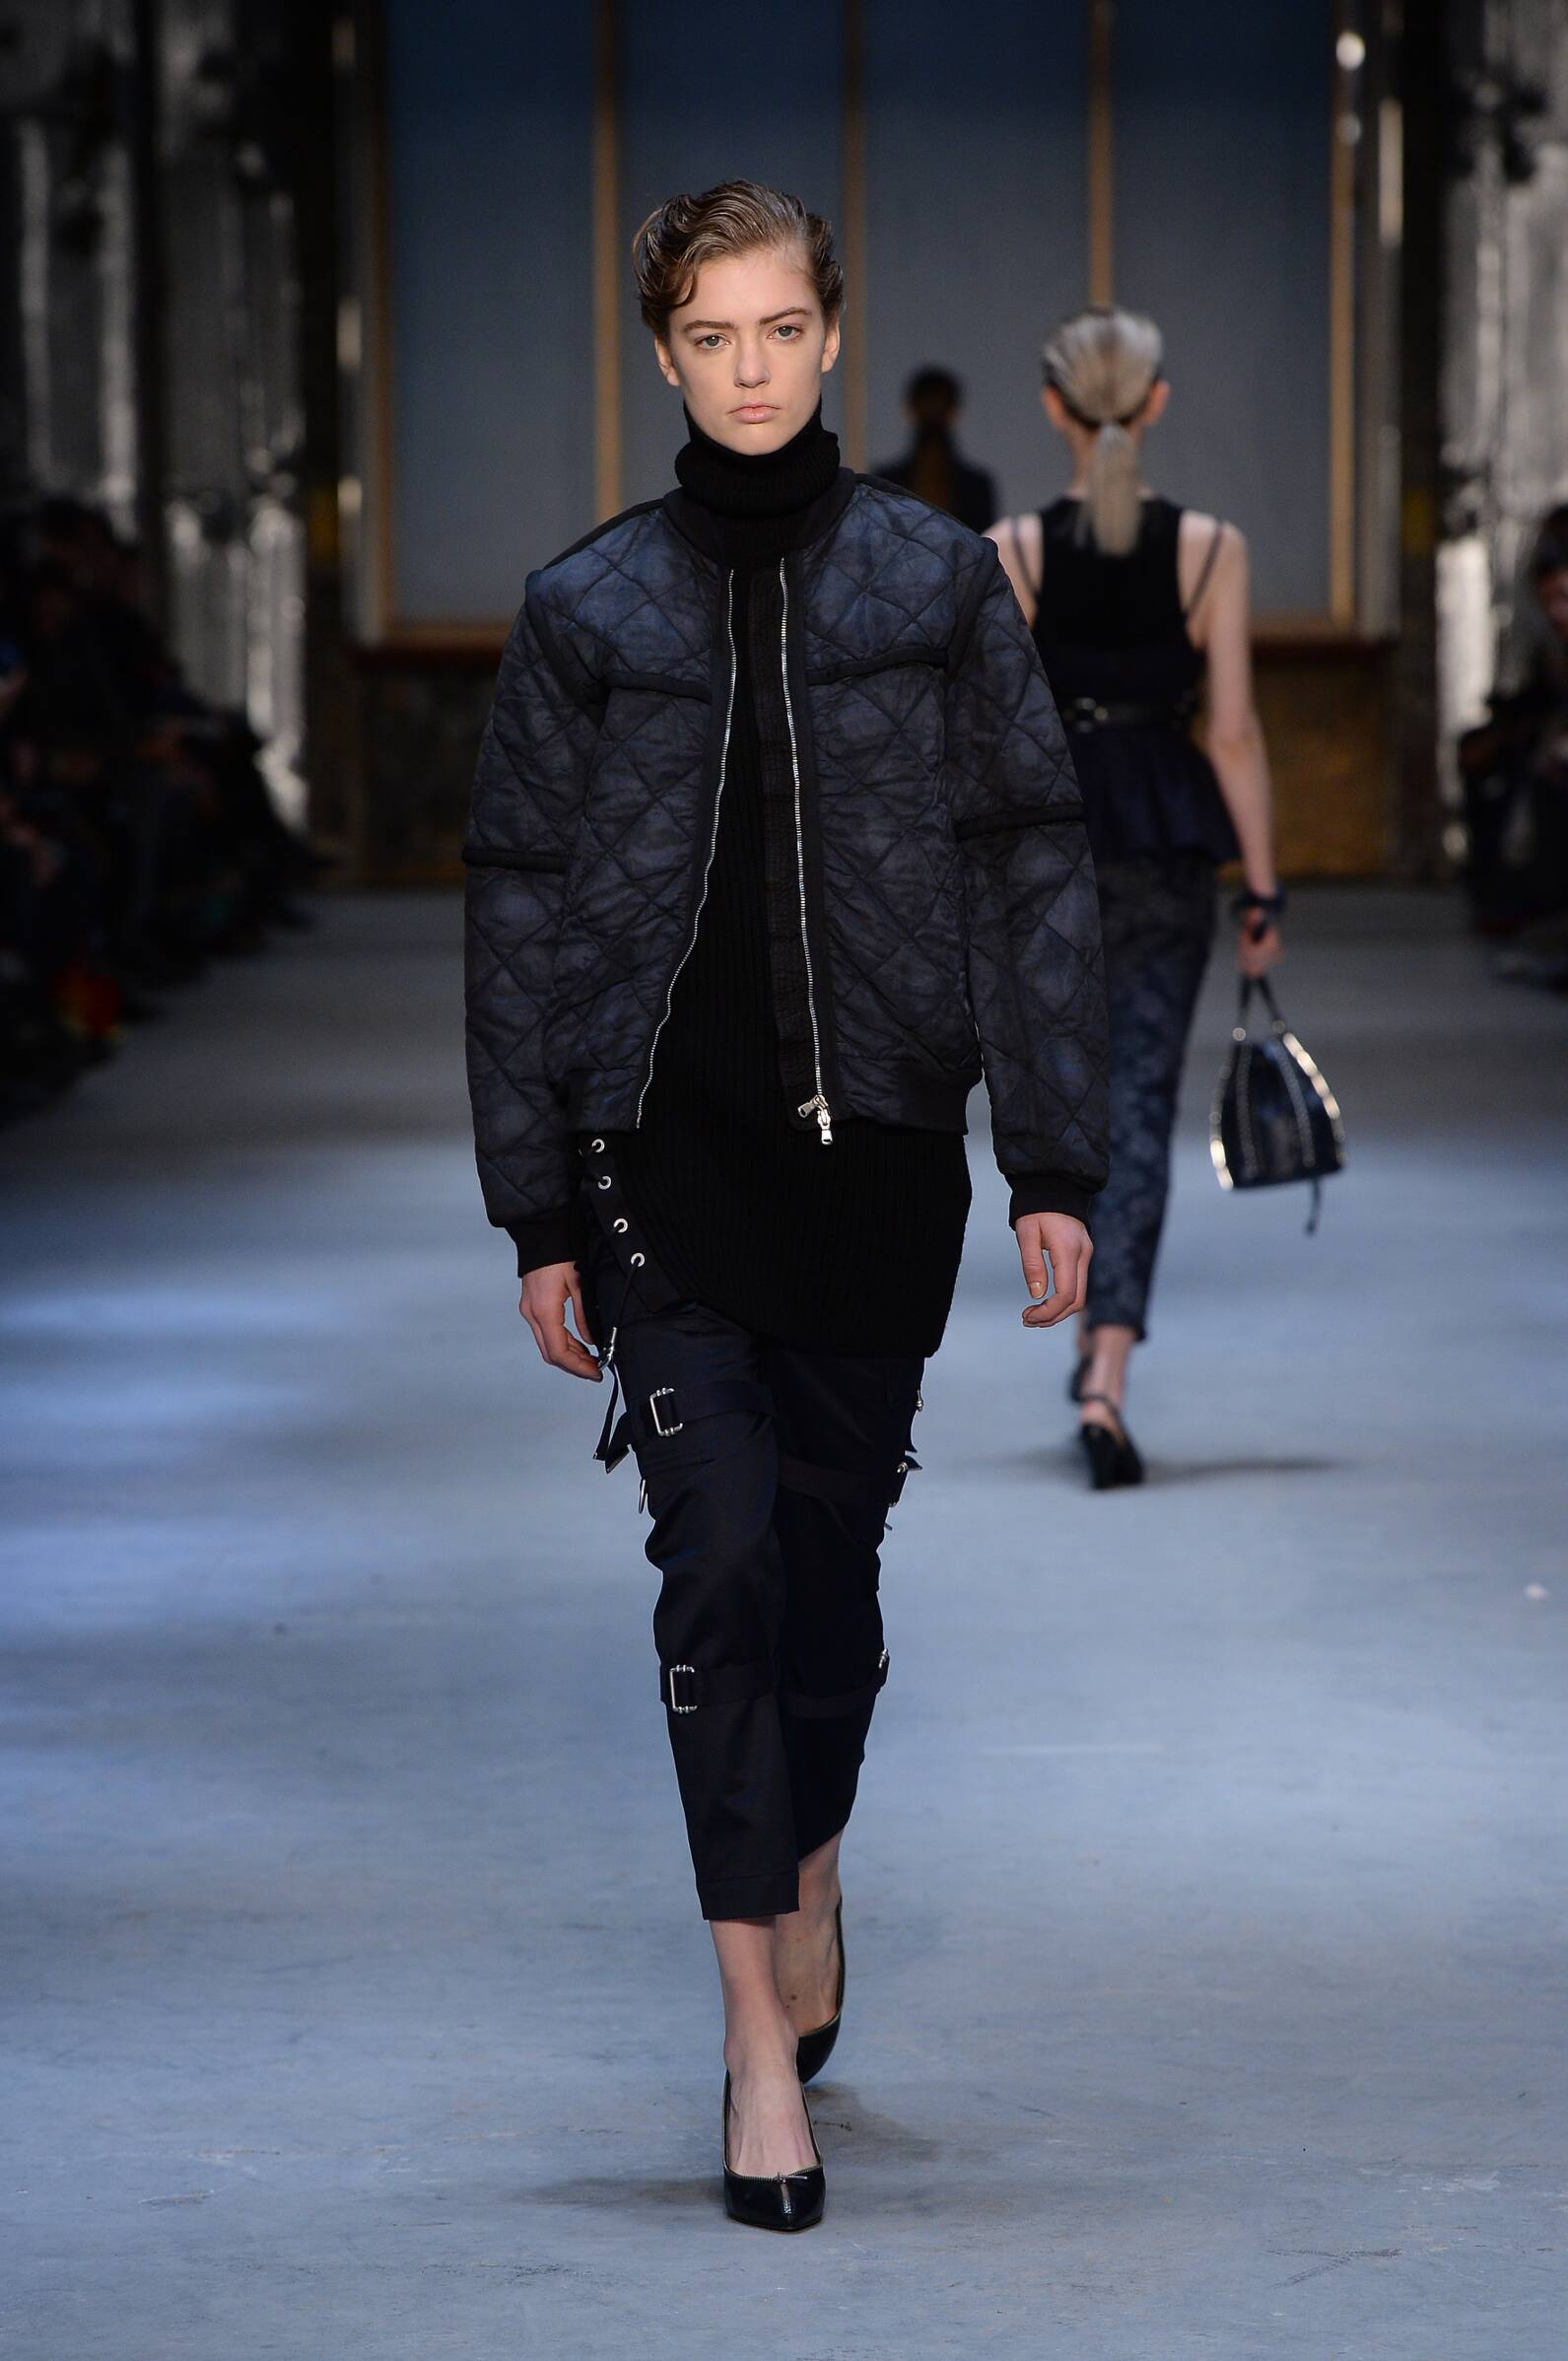 Catwalk Diesel Black Gold Fall Winter 2015 16 Women's Collection New York Fashion Week